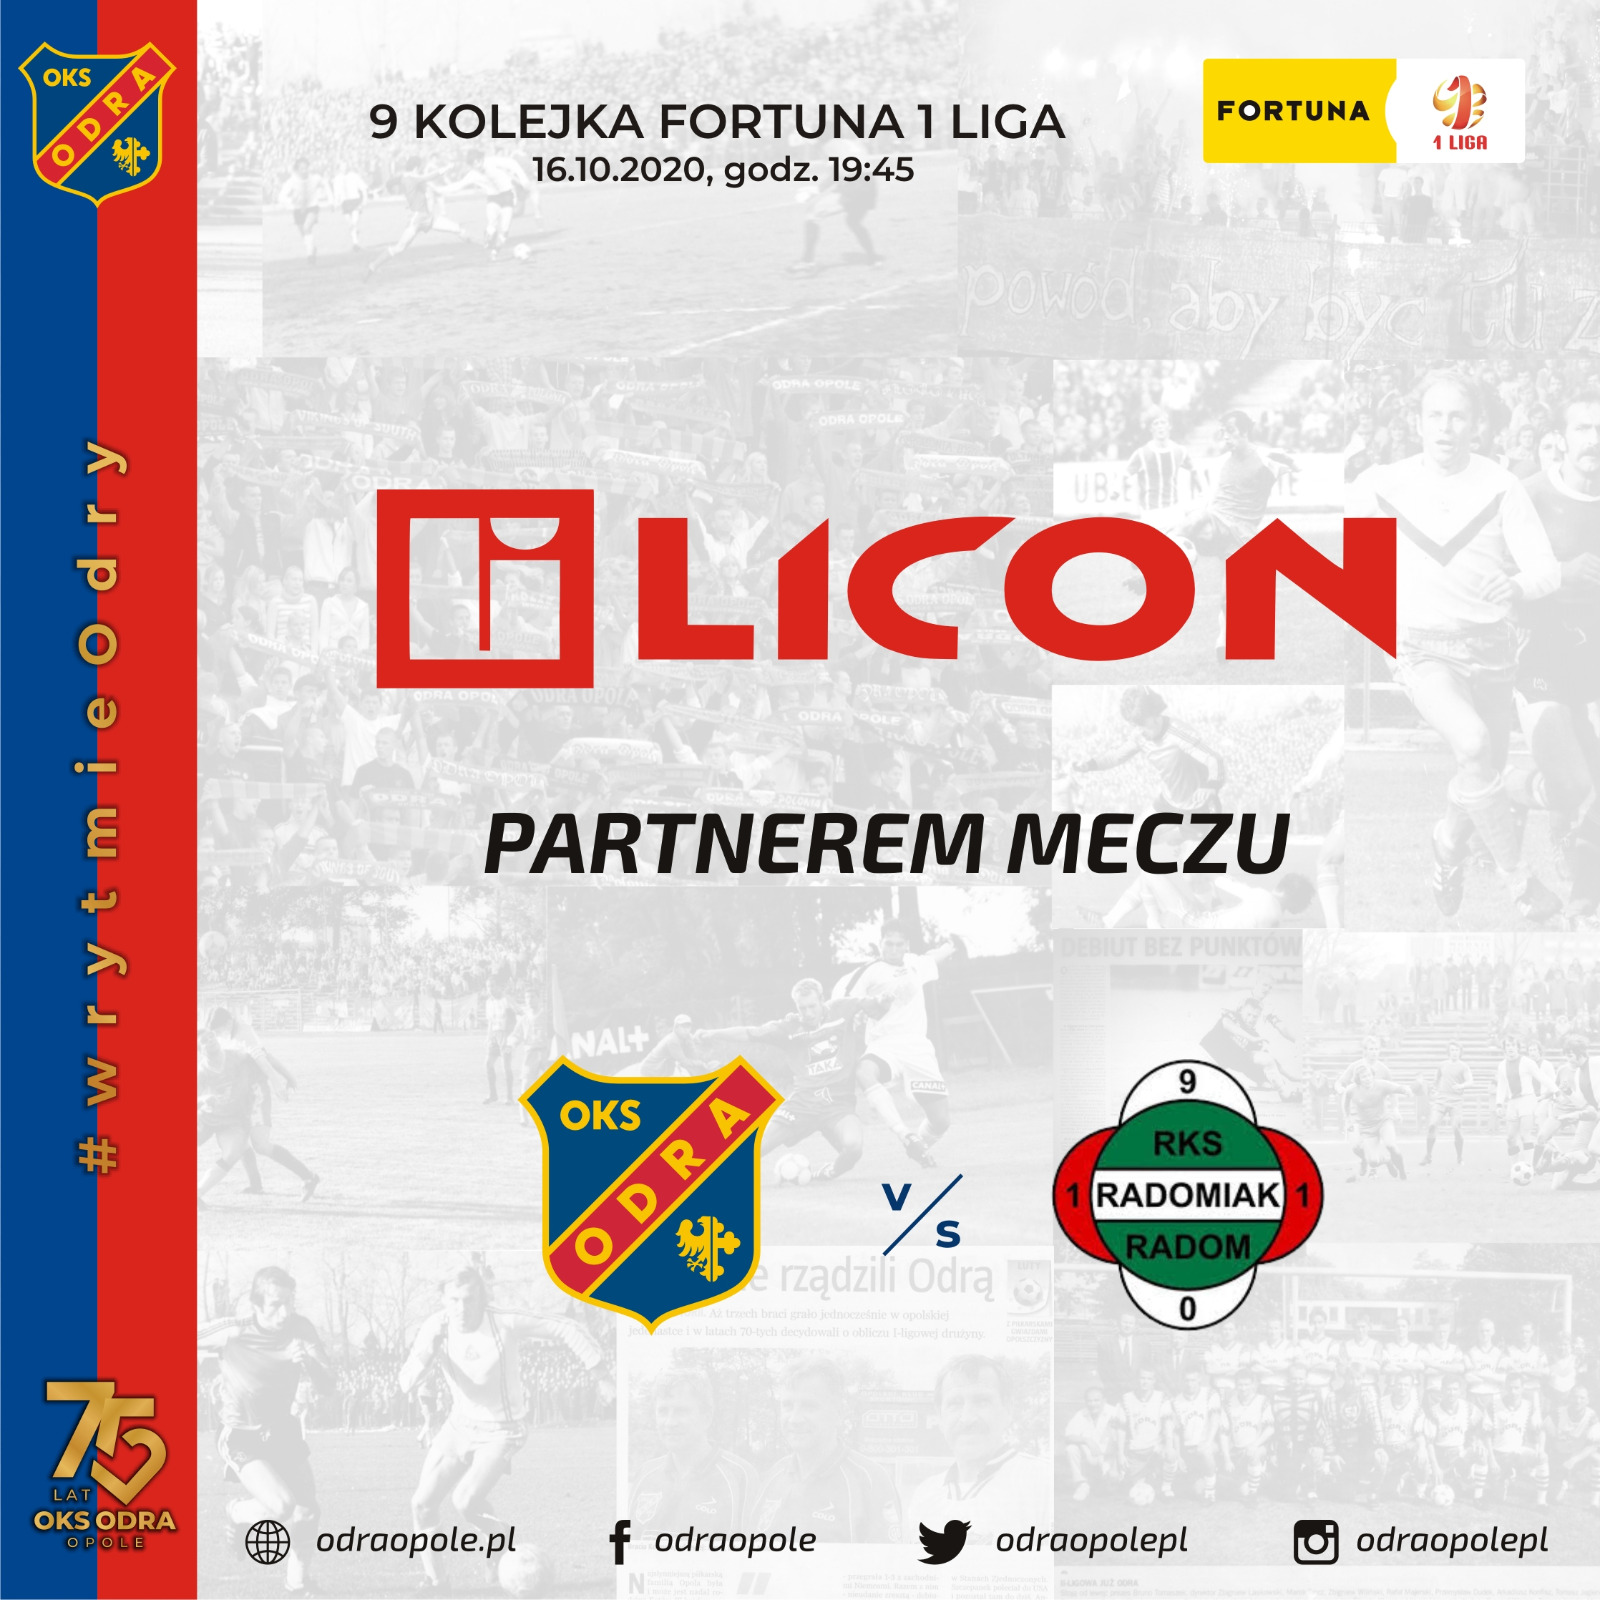 Firma LICON International partnerem meczu z Radomiakiem Radom